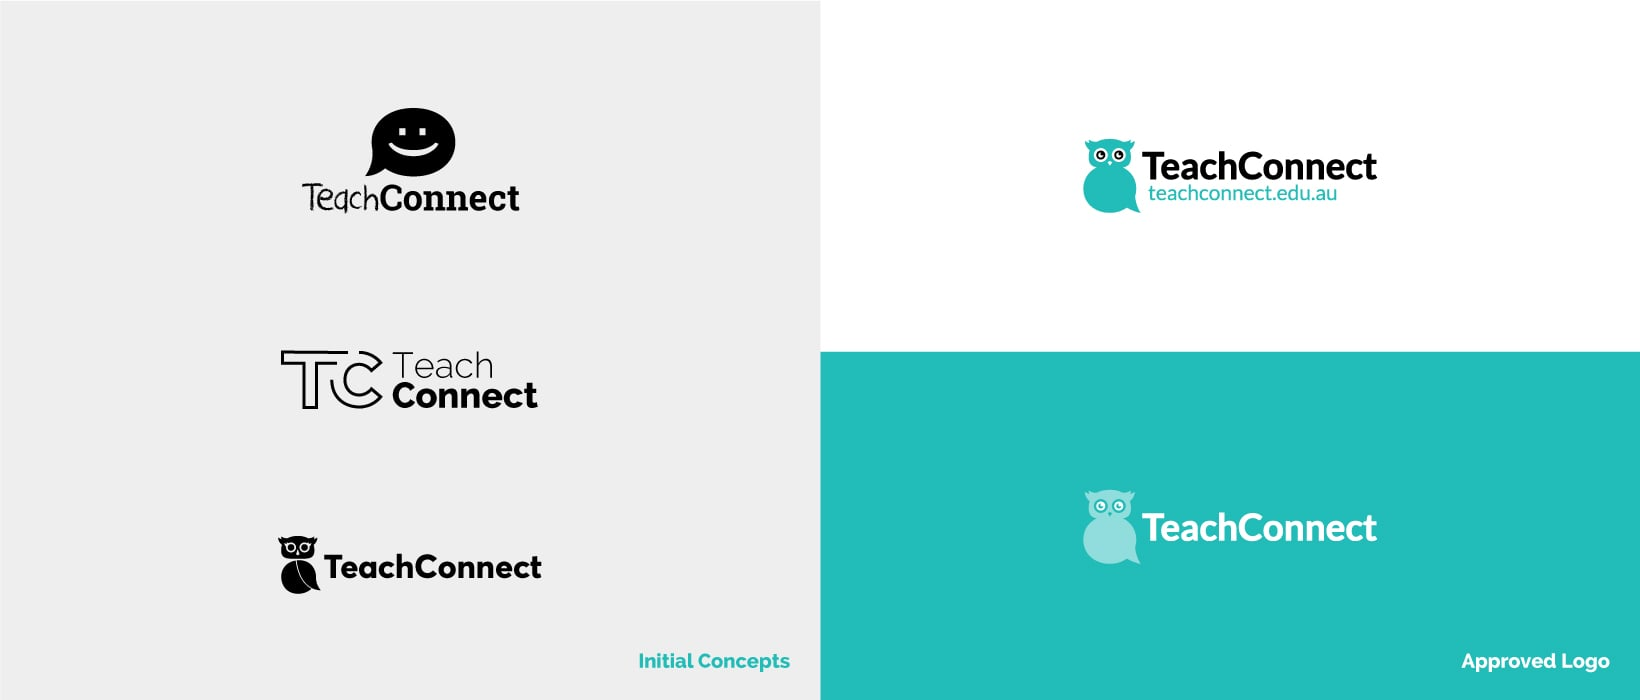 Hunted Hive - TeachConnect Branding Example